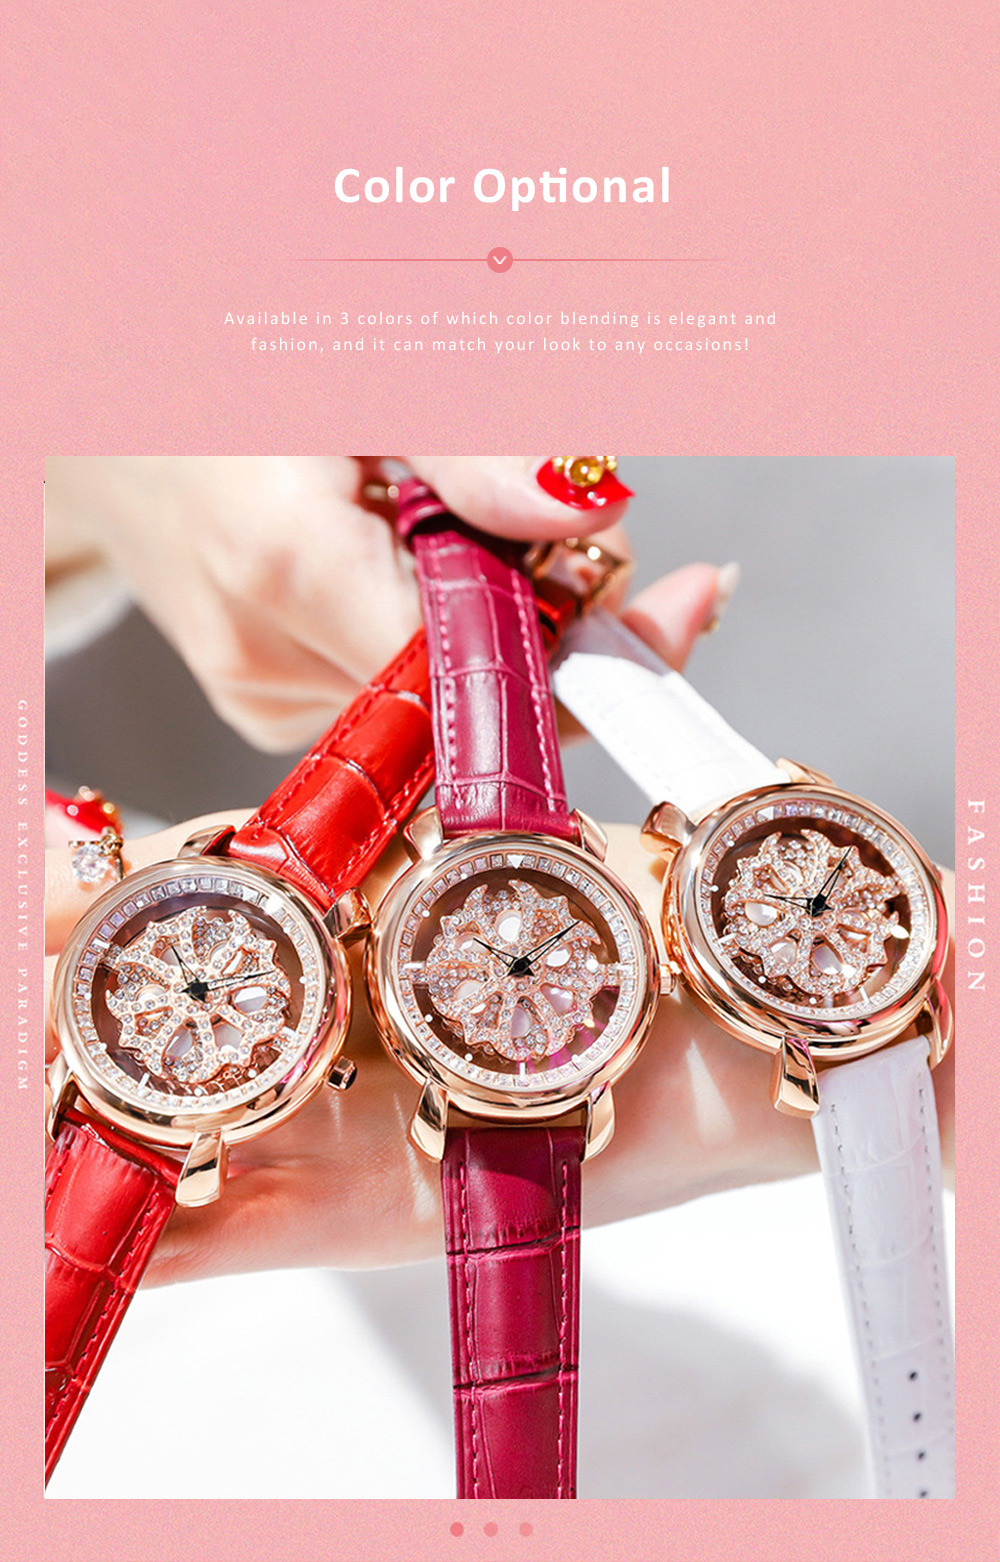 Diamond-encrusted Hollow-out Rotation Watch for Ladies Waterproof Japanese Quartz Movement Wrist Watch 4